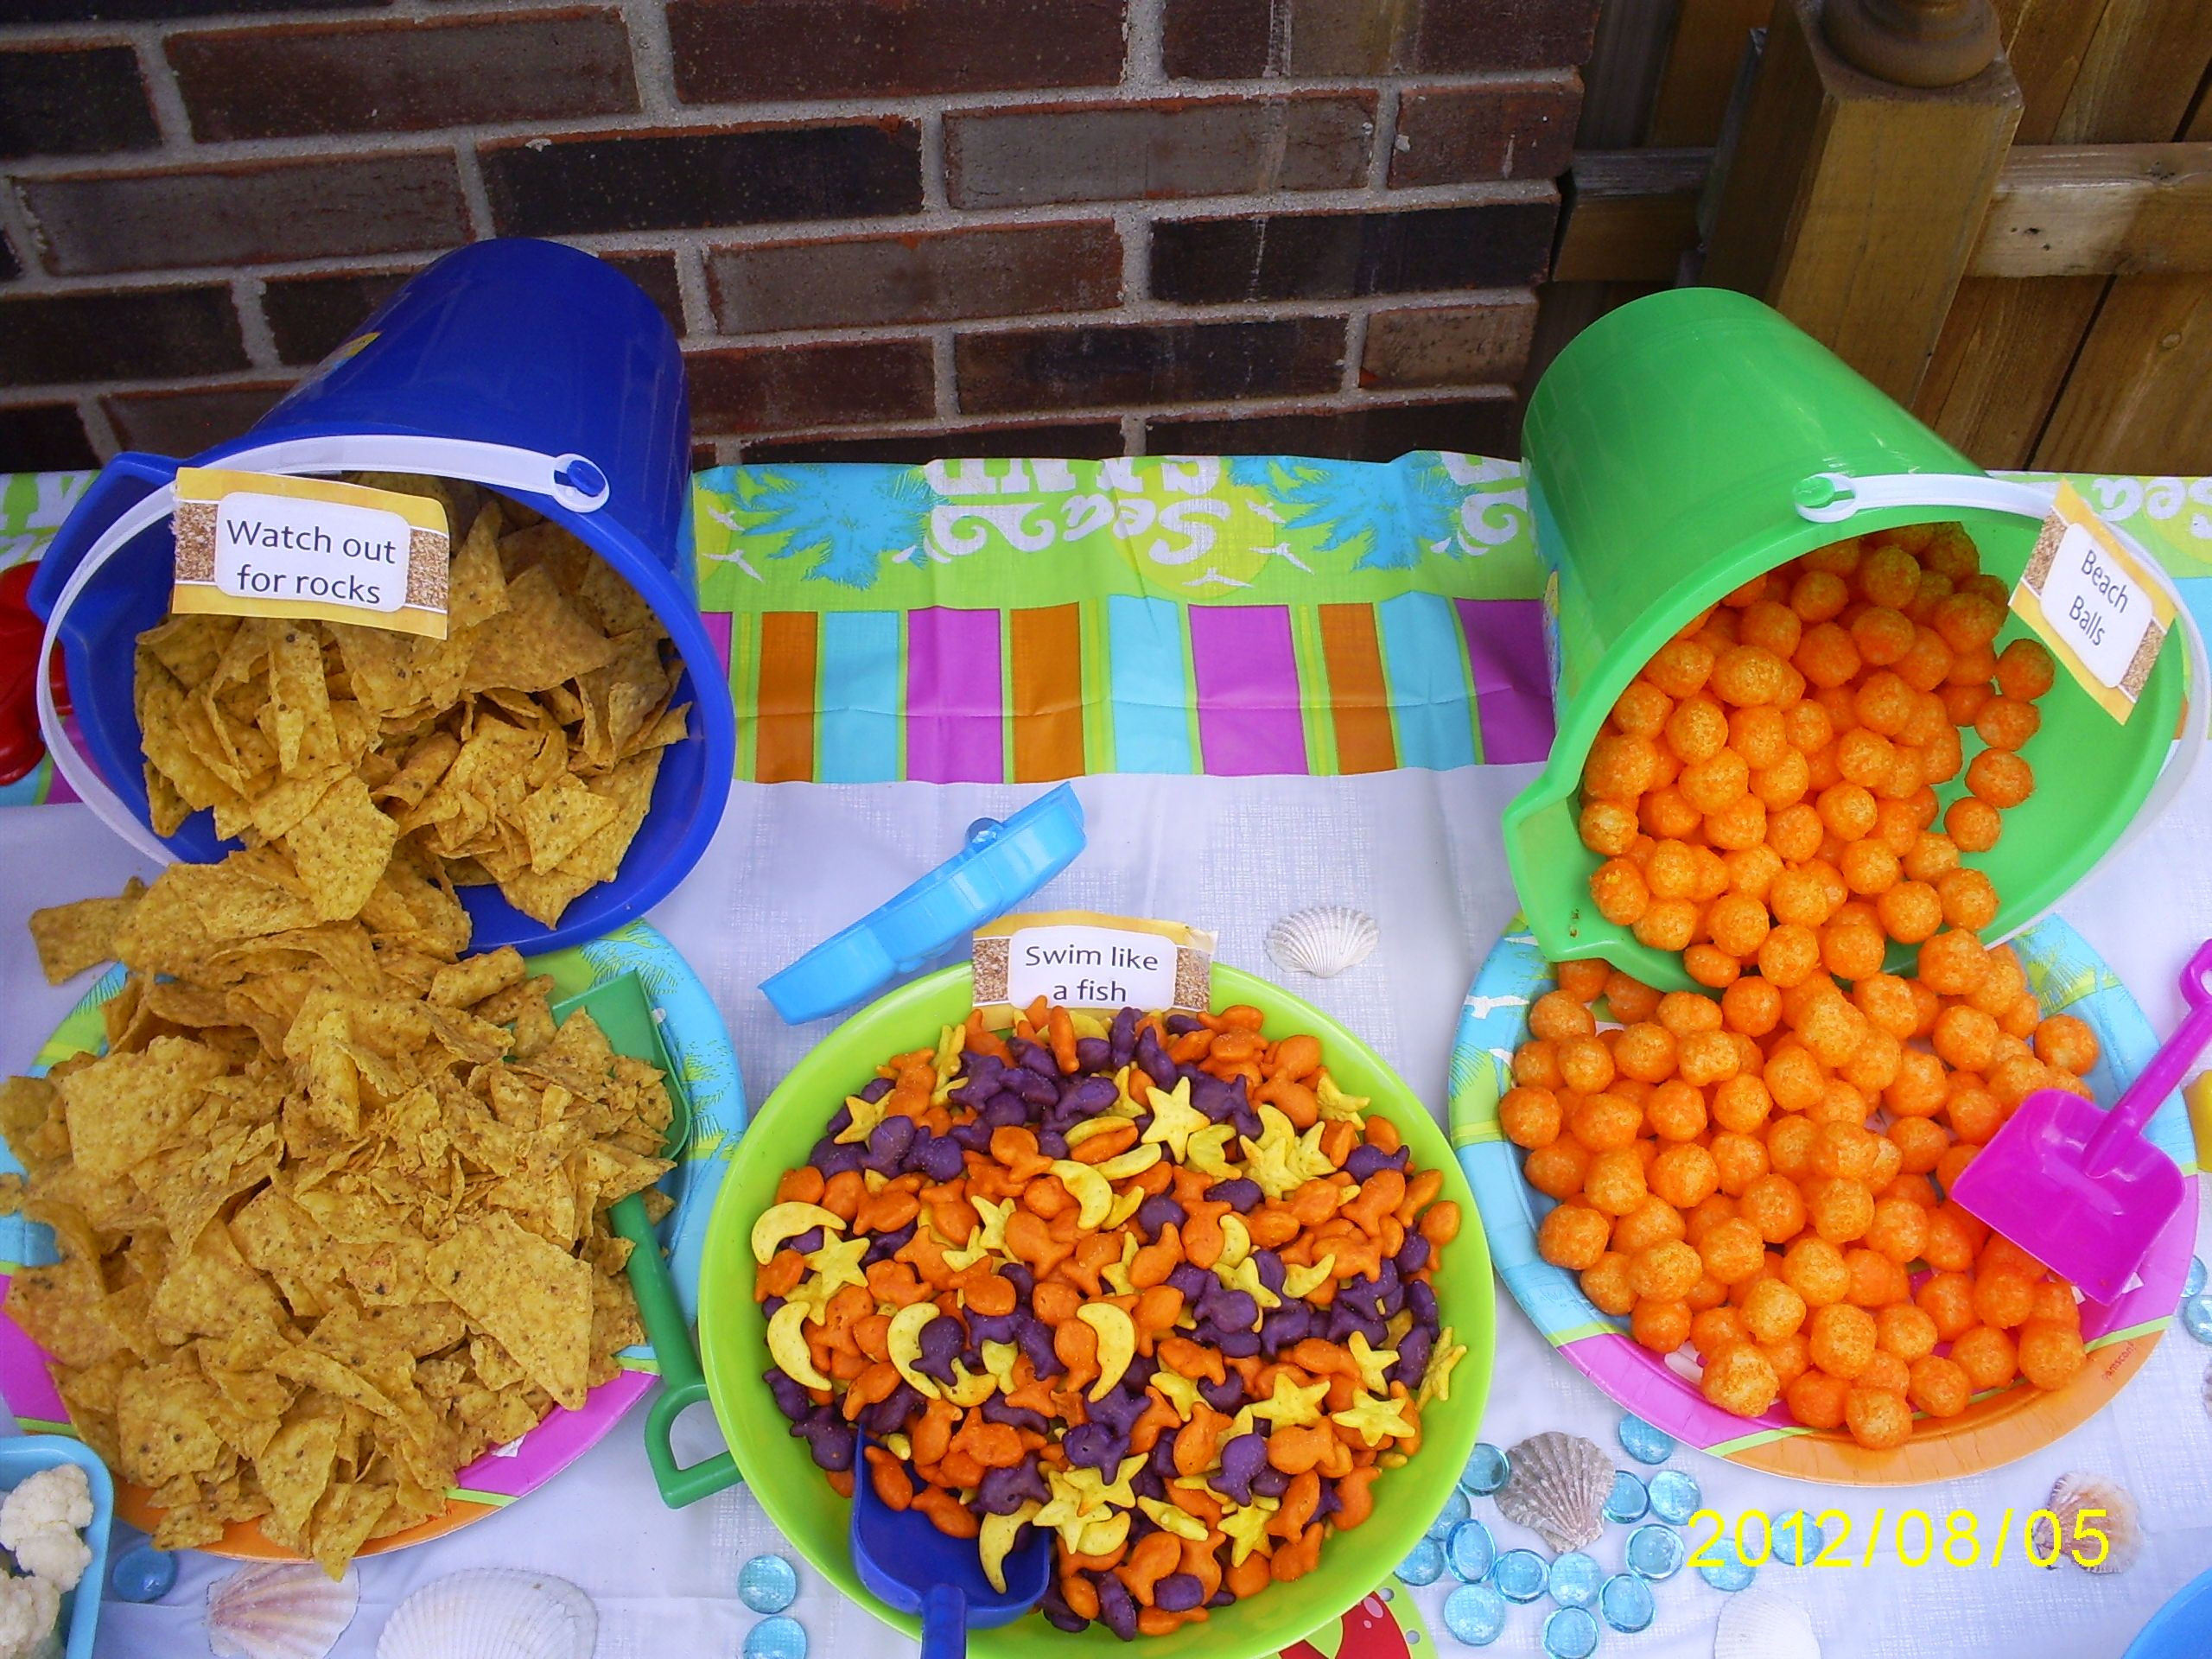 Kids Pool Party Food Ideas  pool party food= Doritos gold fish cheese puffs